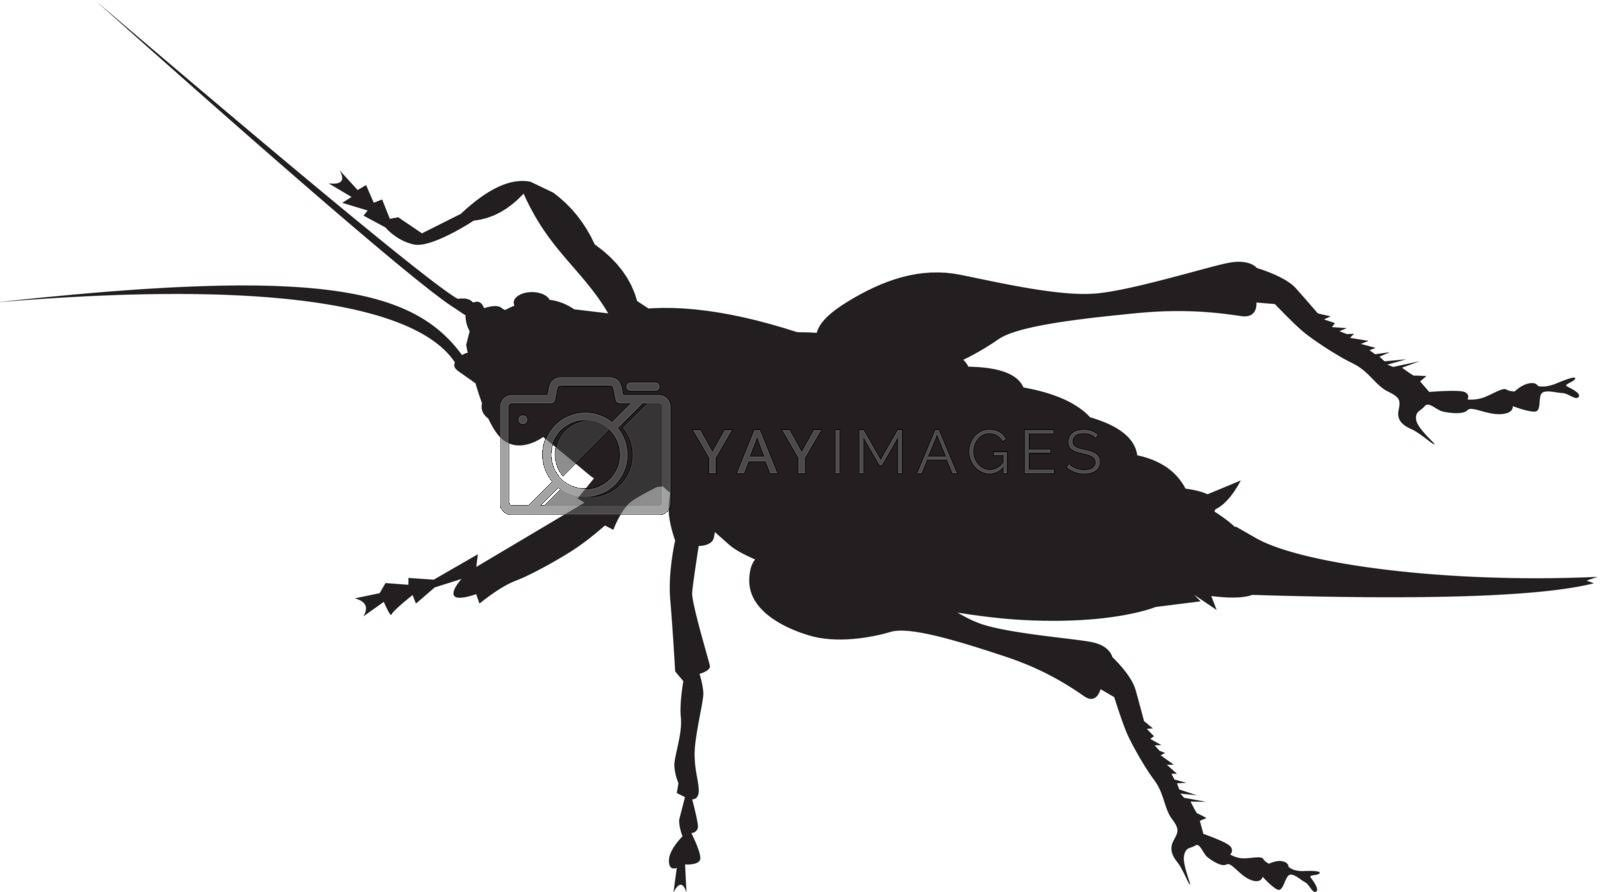 Illustration of an cricket silhouette on white background.